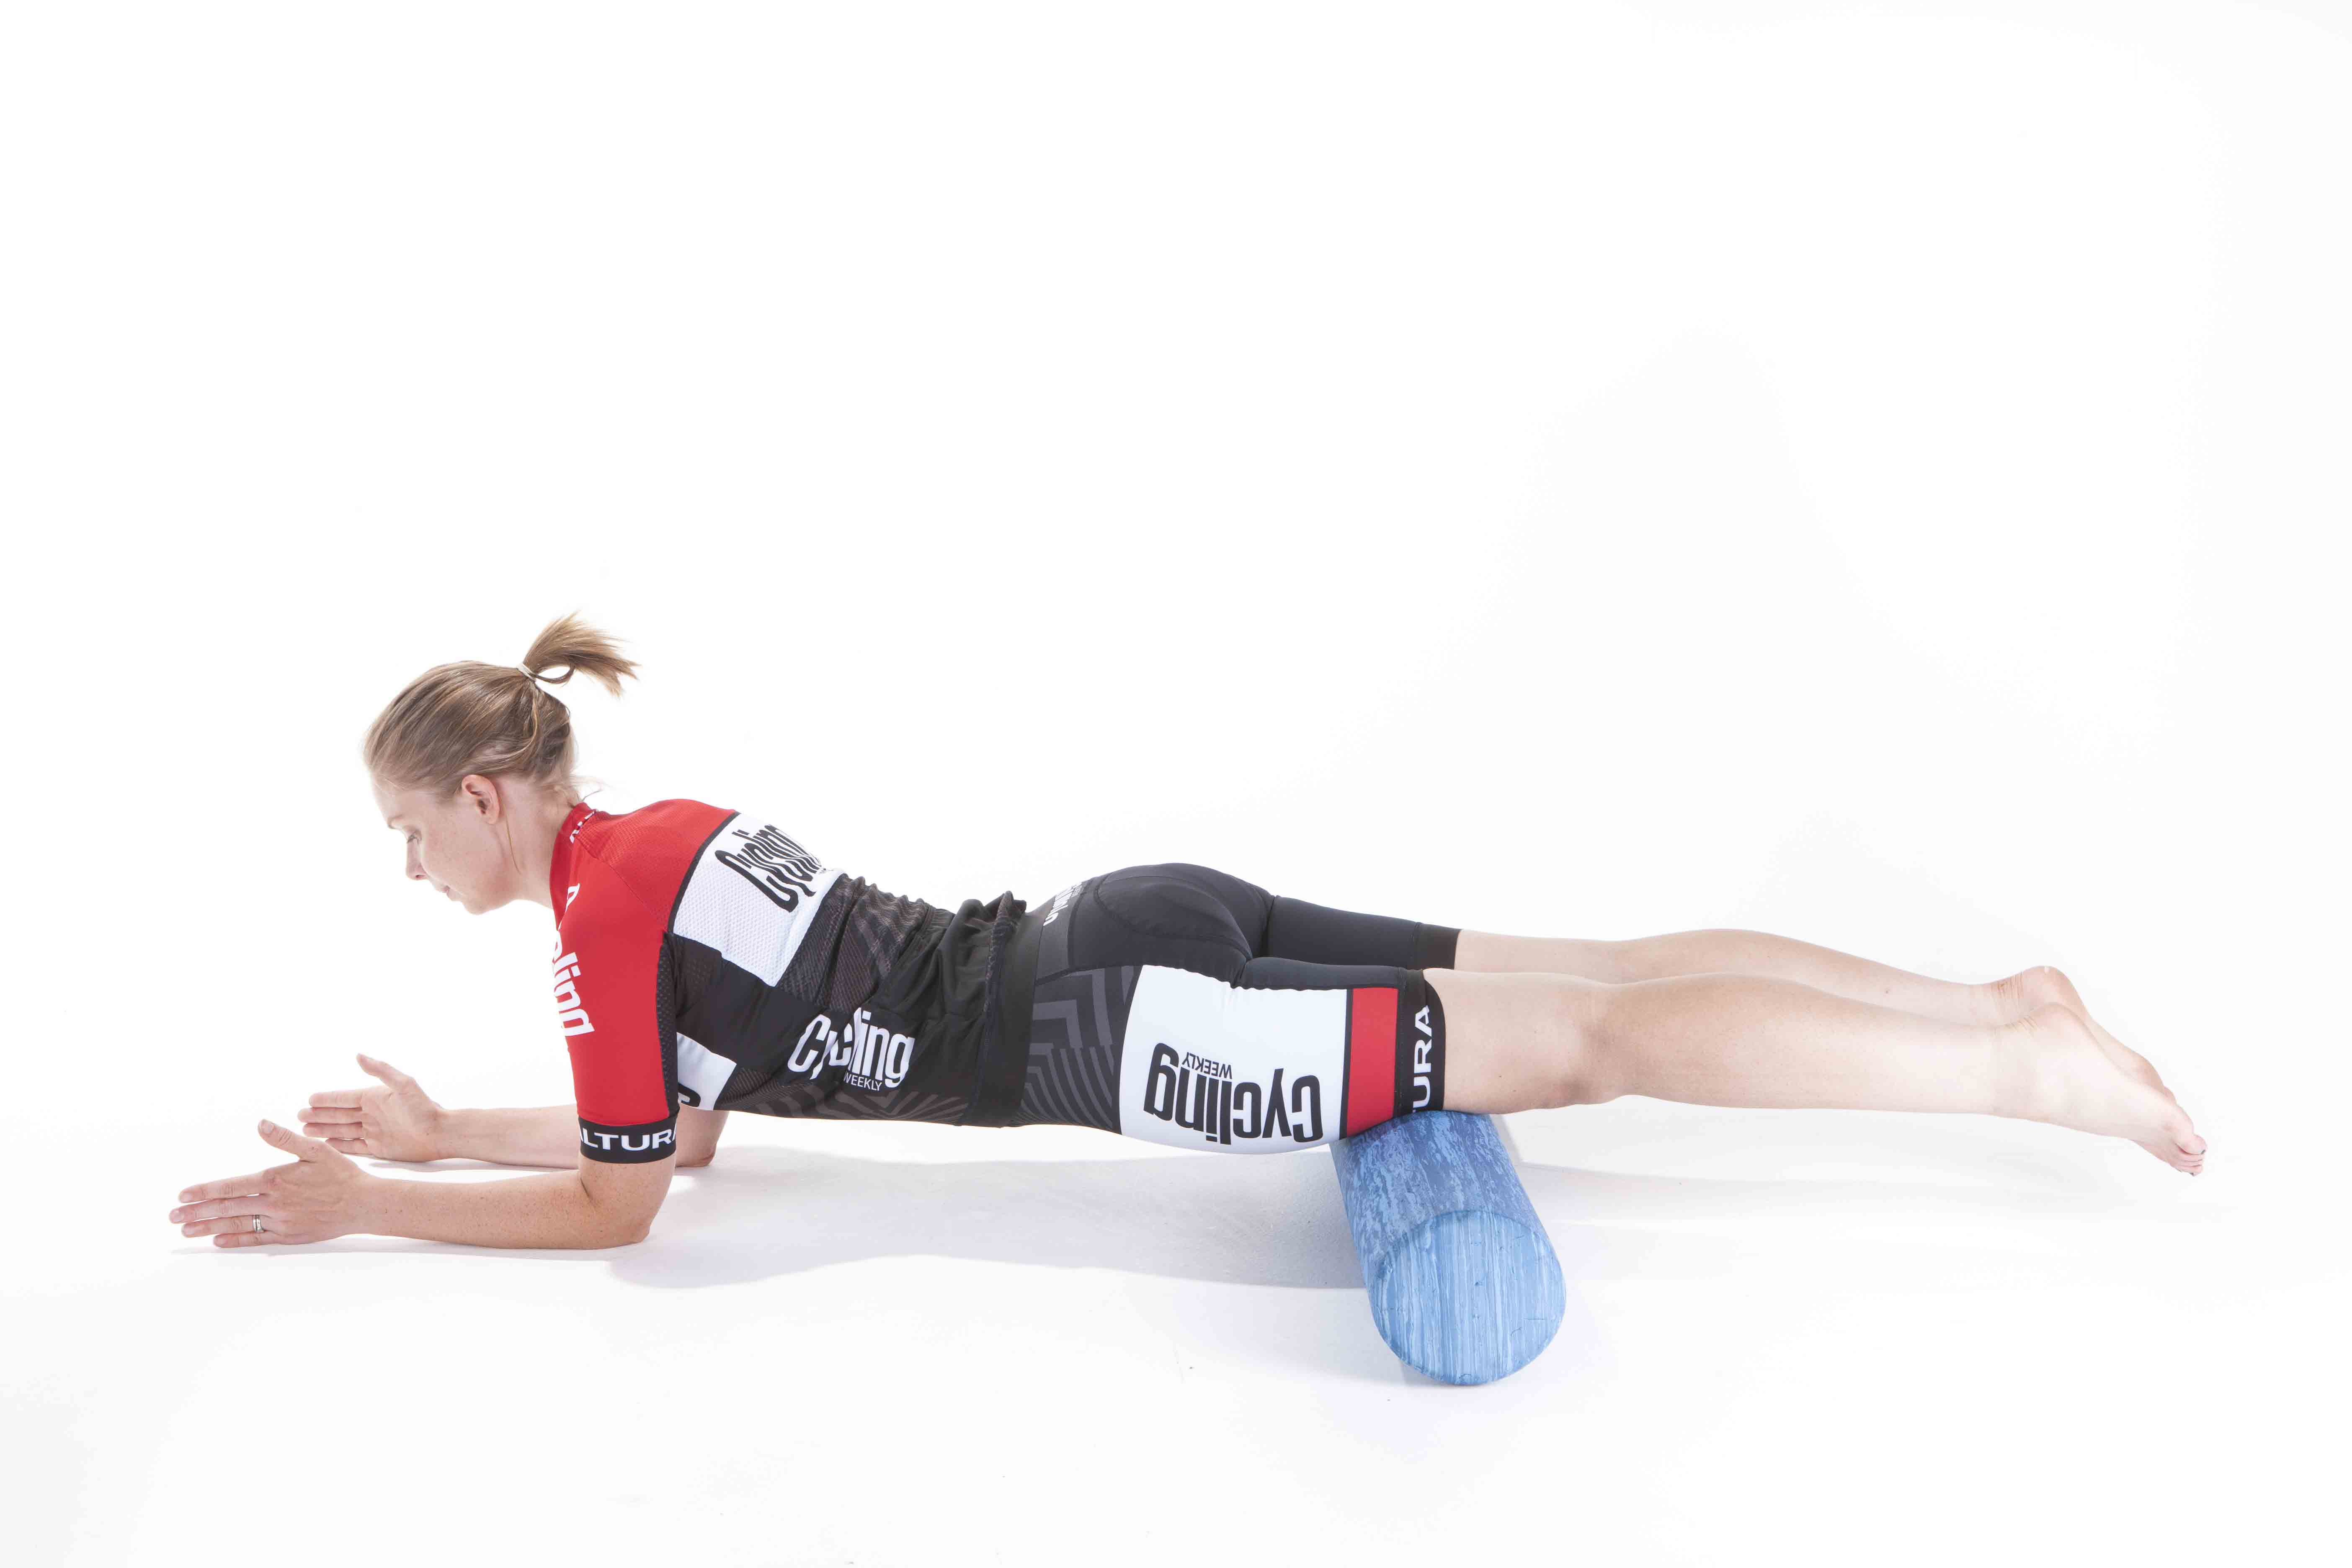 How to use a foam roller exercises and stretches